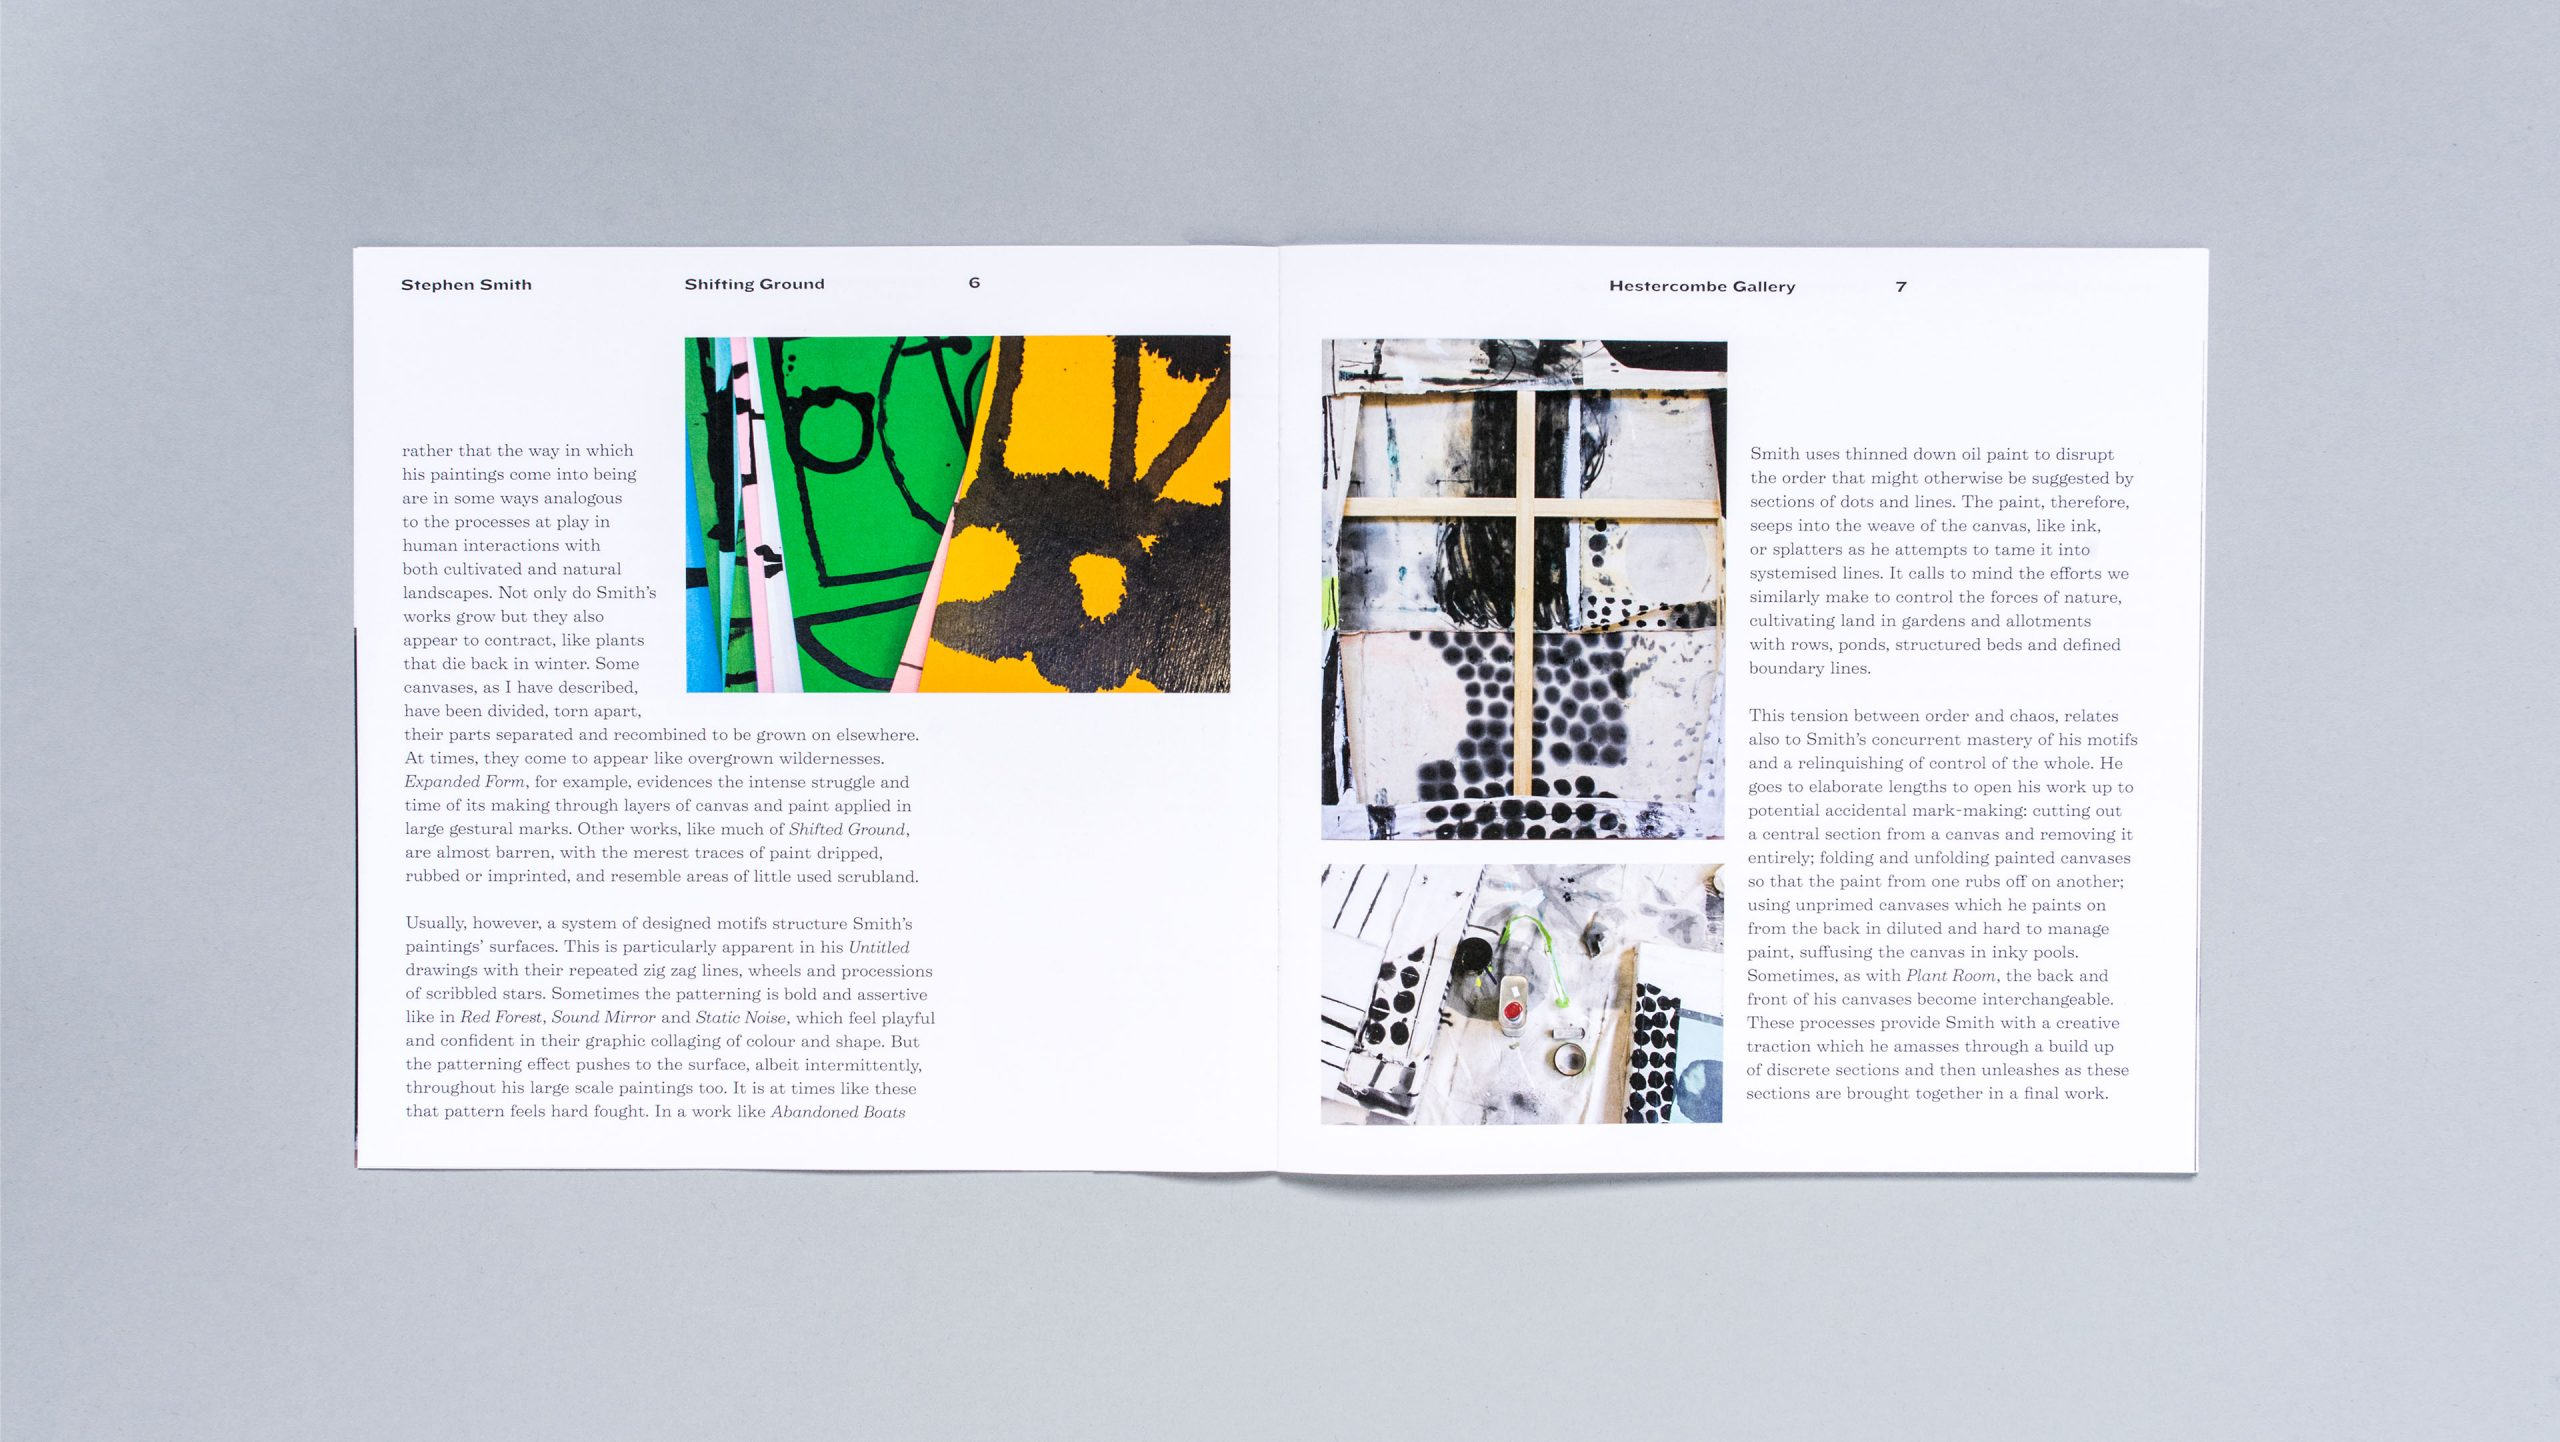 Inside spread of the exhibition catalogue for Shifting Ground, a show of work by painter Stephen Smith at Hestercombe Gallery, designed by City Edition Studio